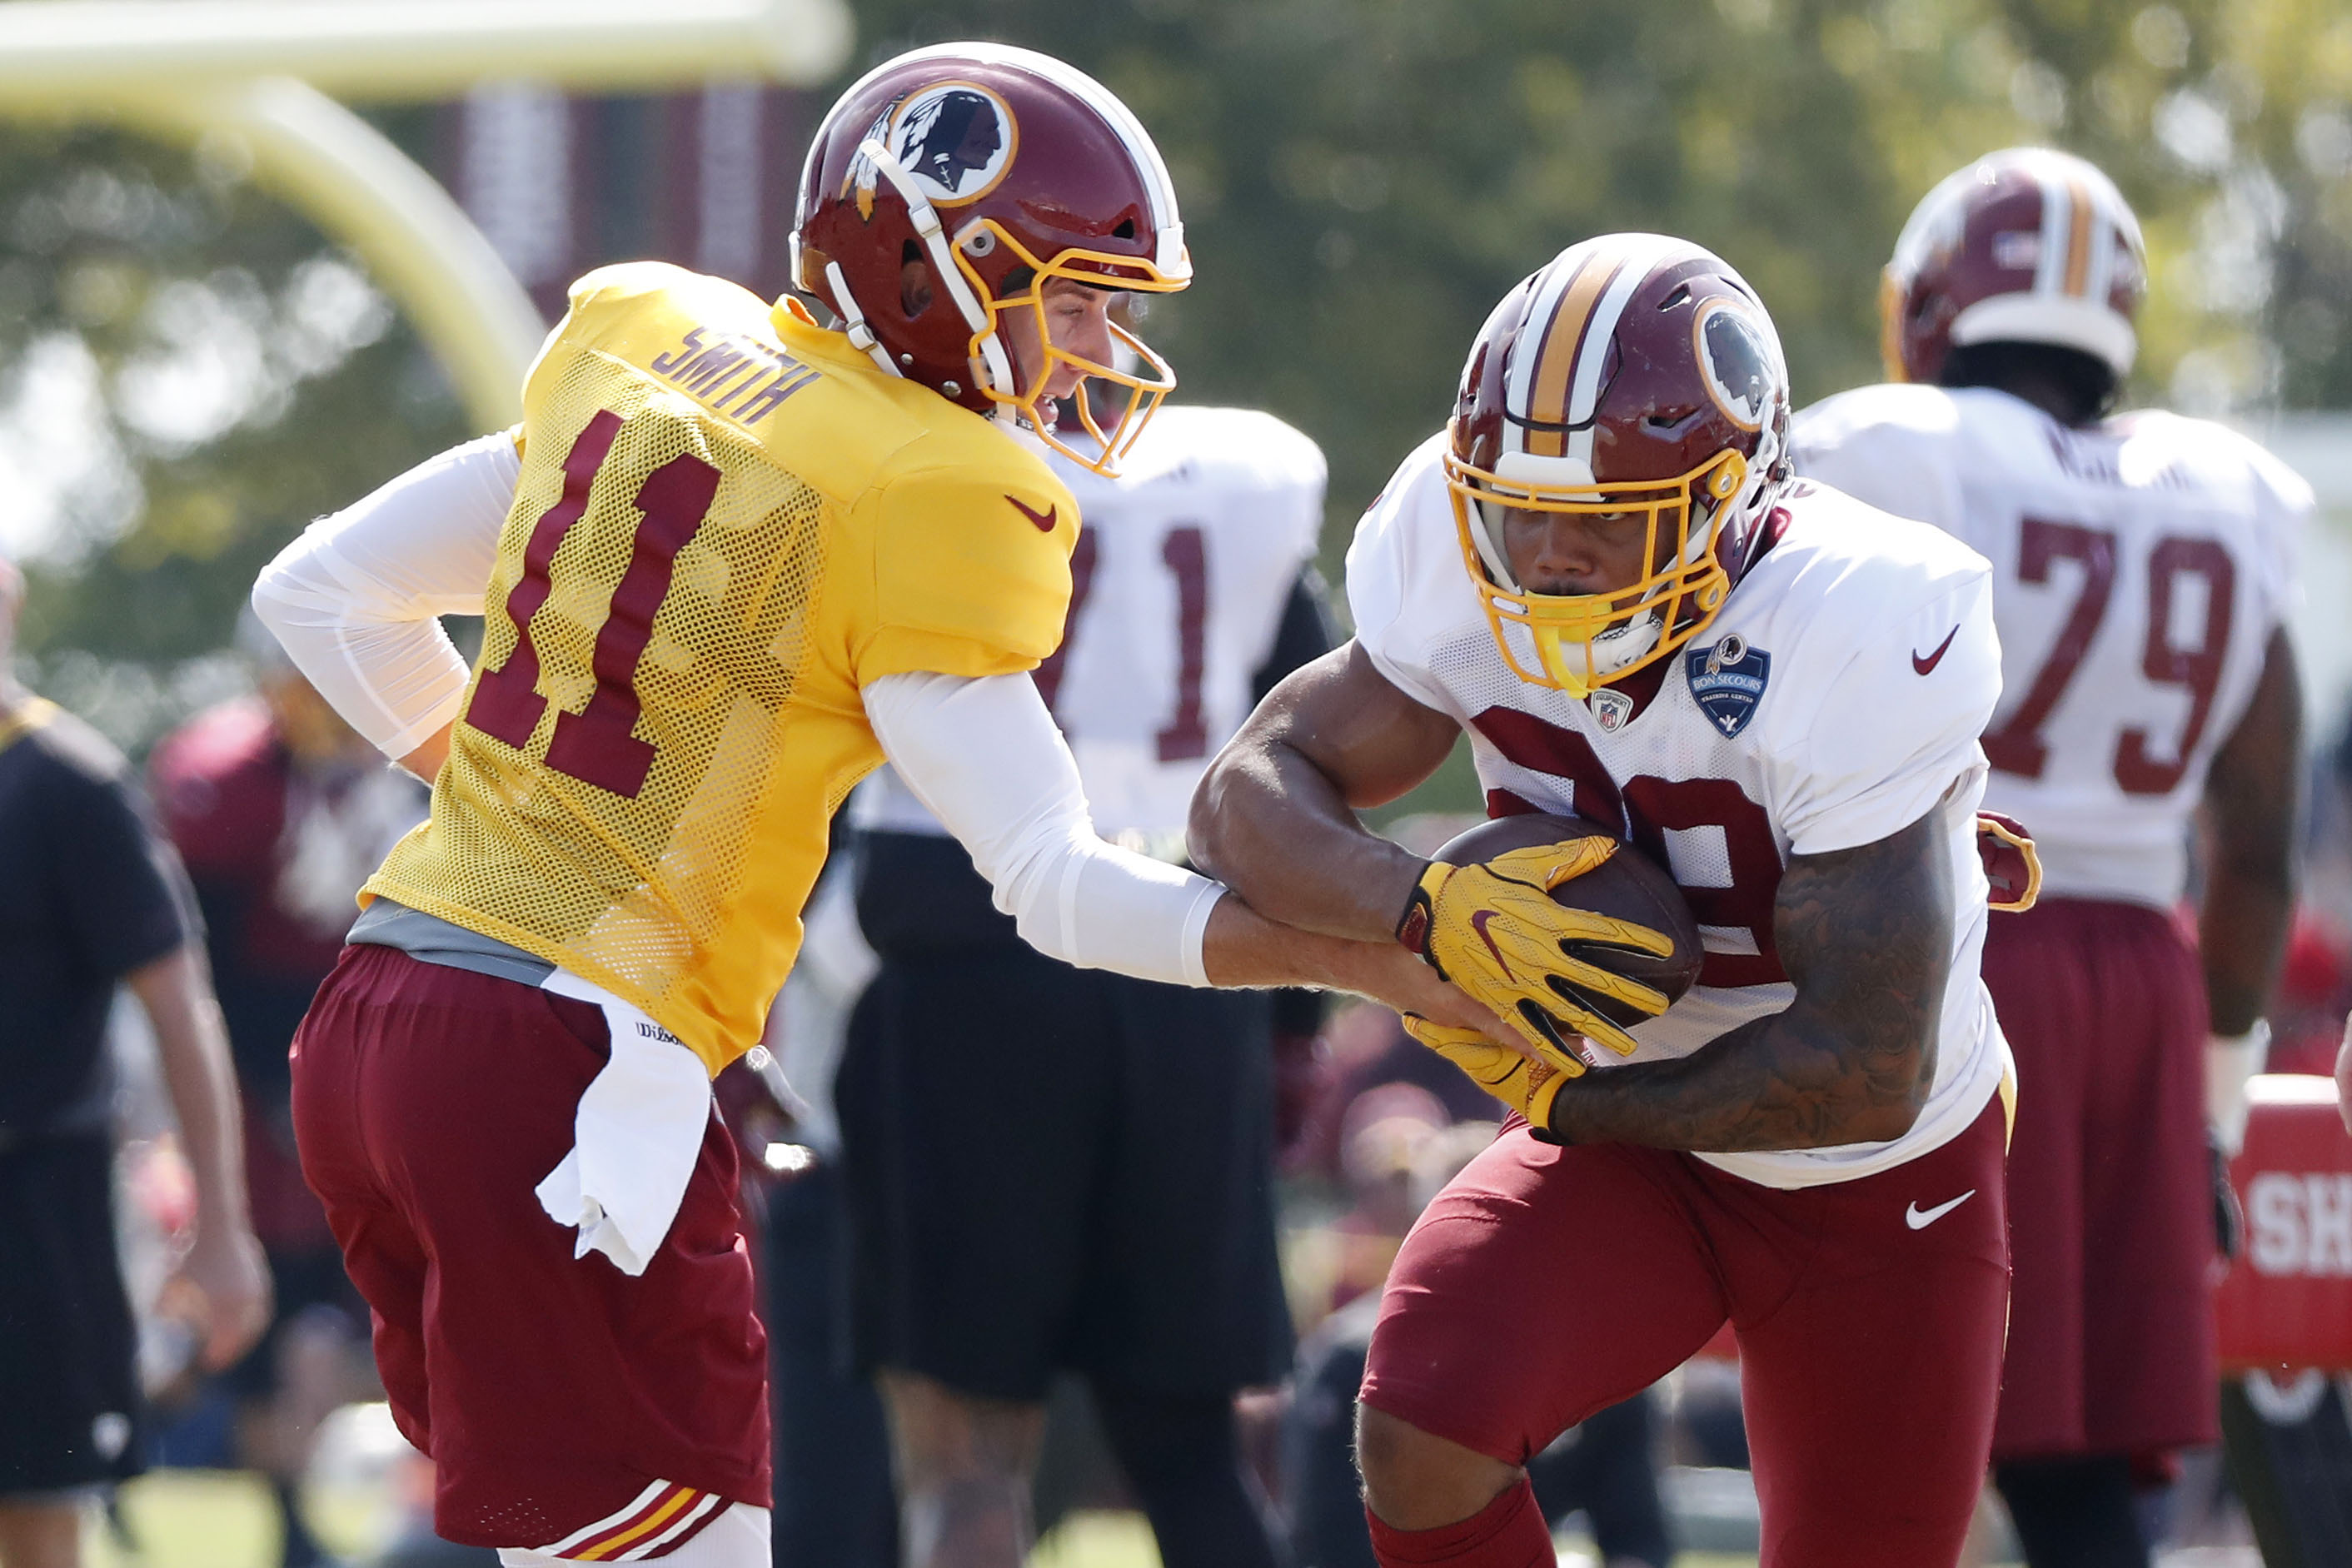 National Football League preseason quickly claims promising Redskins rookie